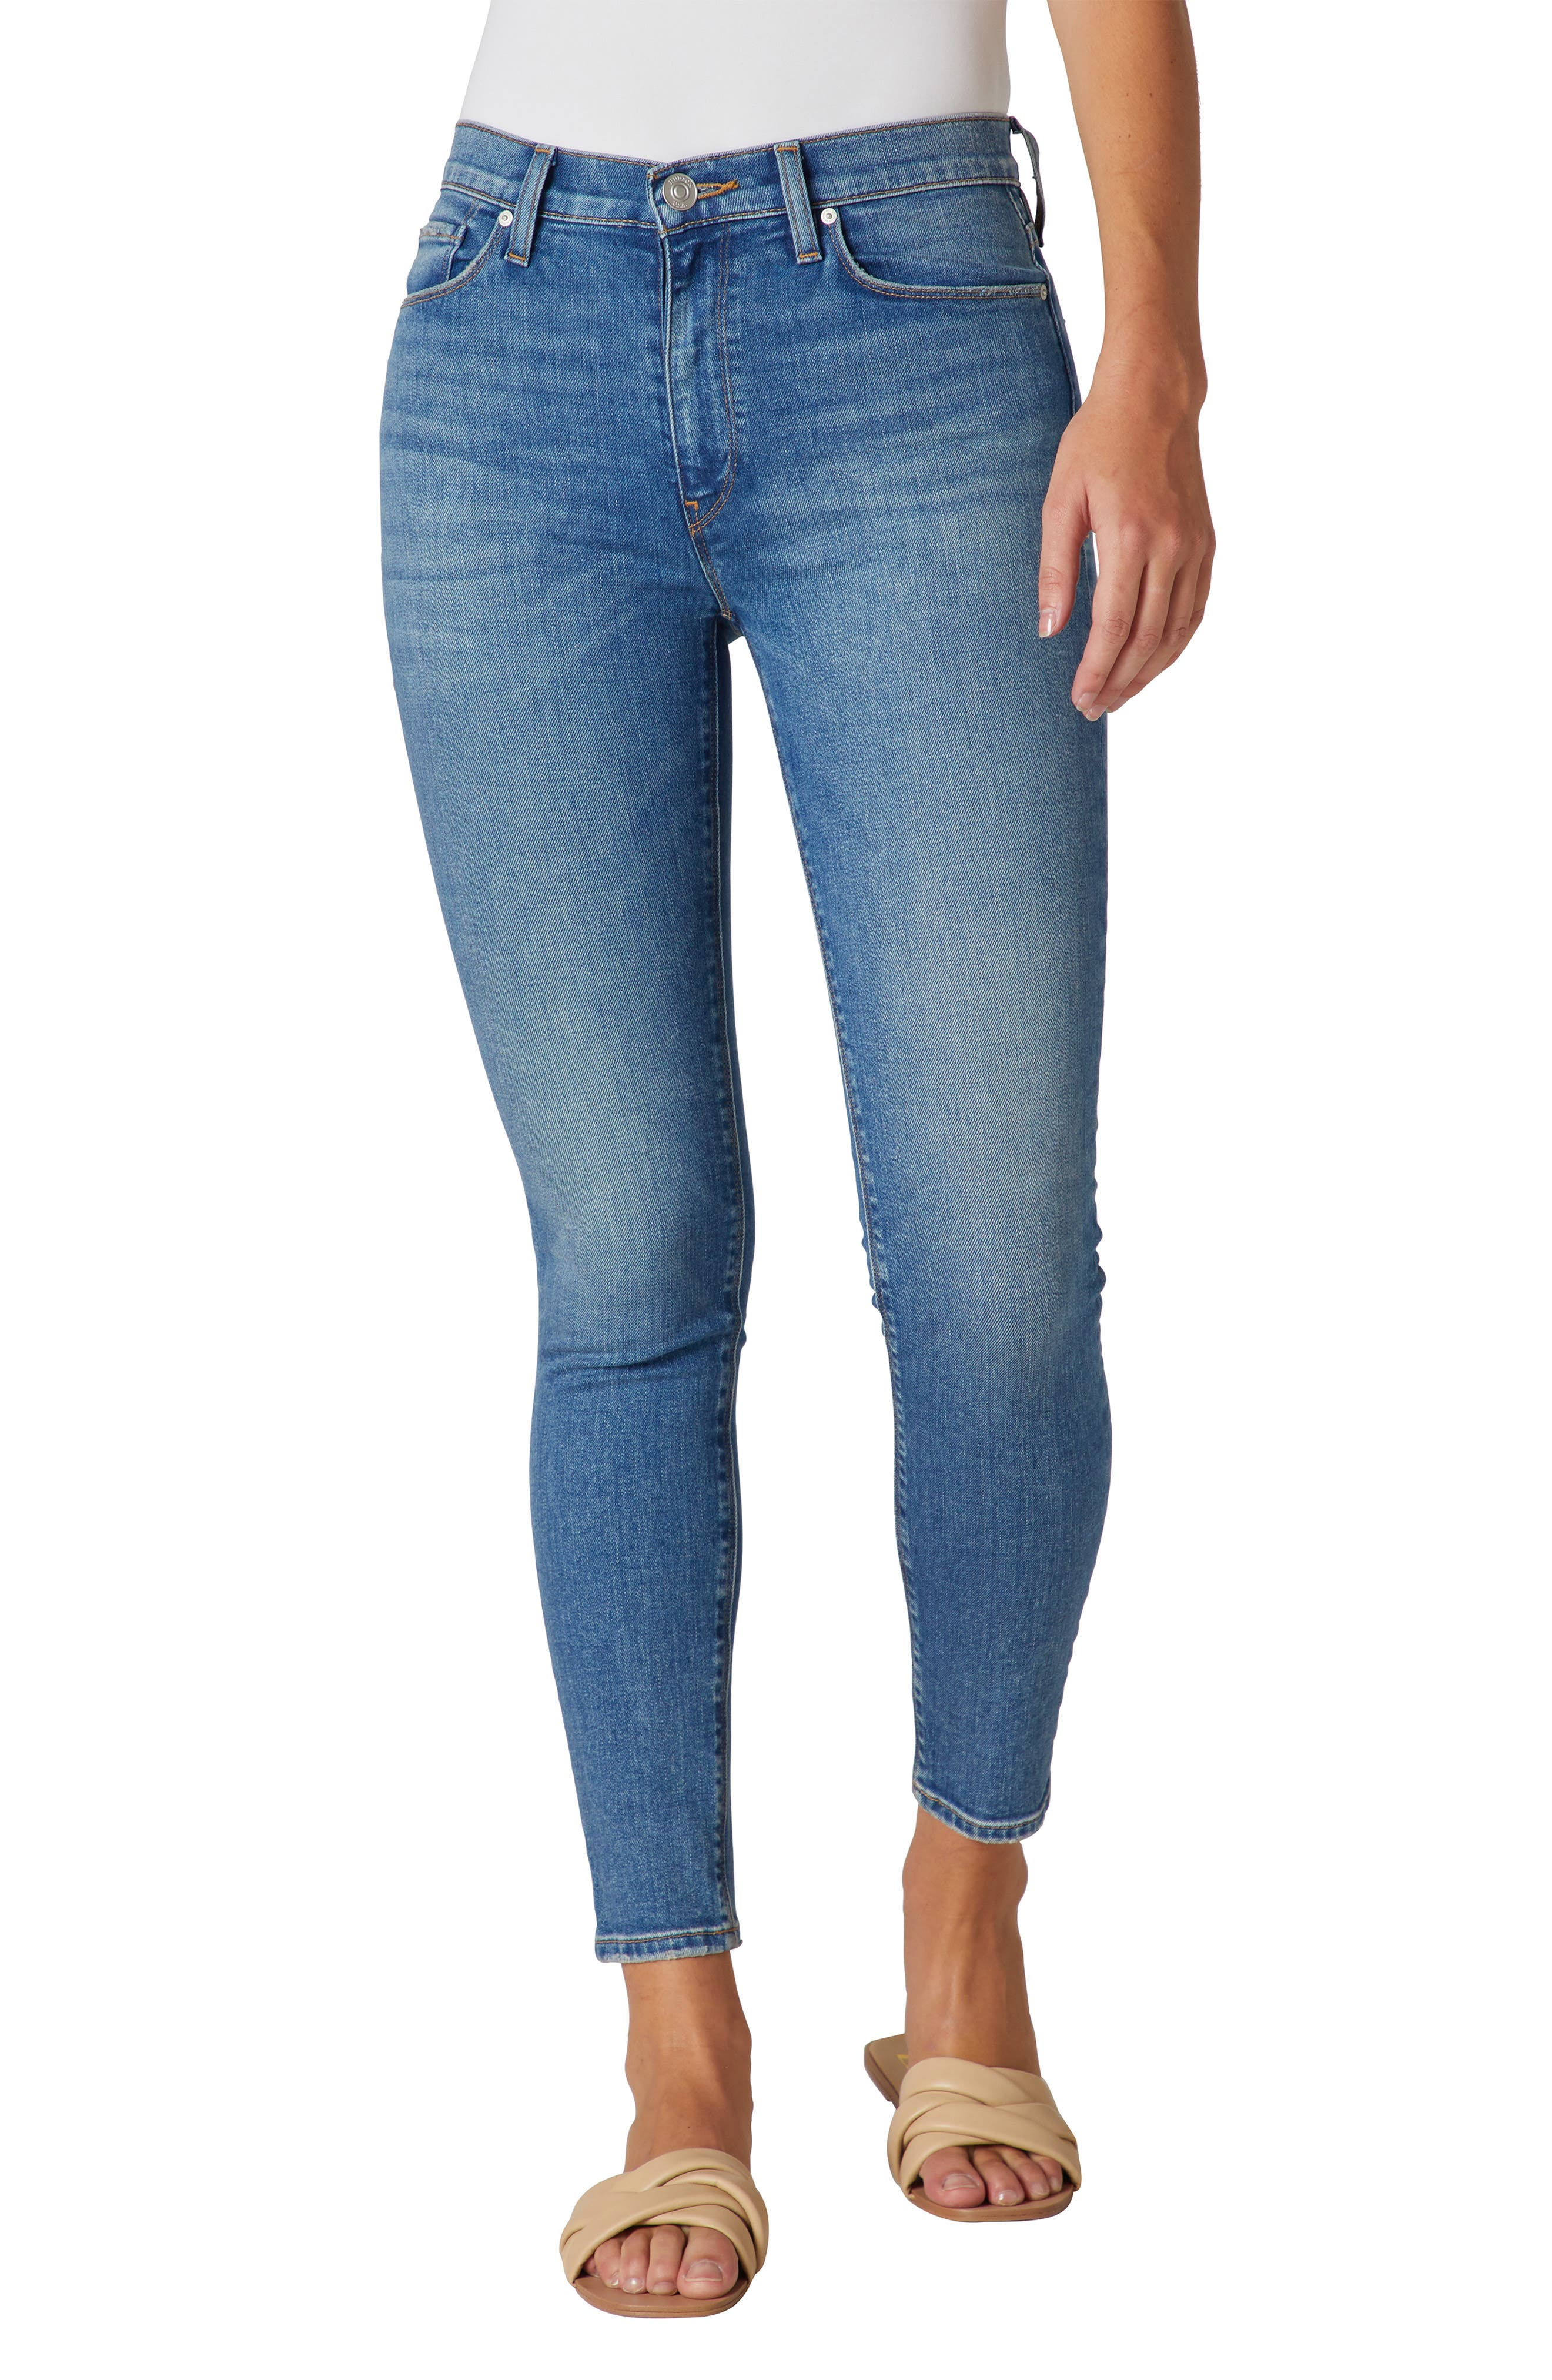 Figure-hugging high-rise jeans are cut from lightweight denim that\\\'s soft, stretchy, and faded to lived-in perfection. Style Name: Hudson Jeans Barbara High Waist Ankle Skinny Jeans. Style Number: 6098427. Available in stores.